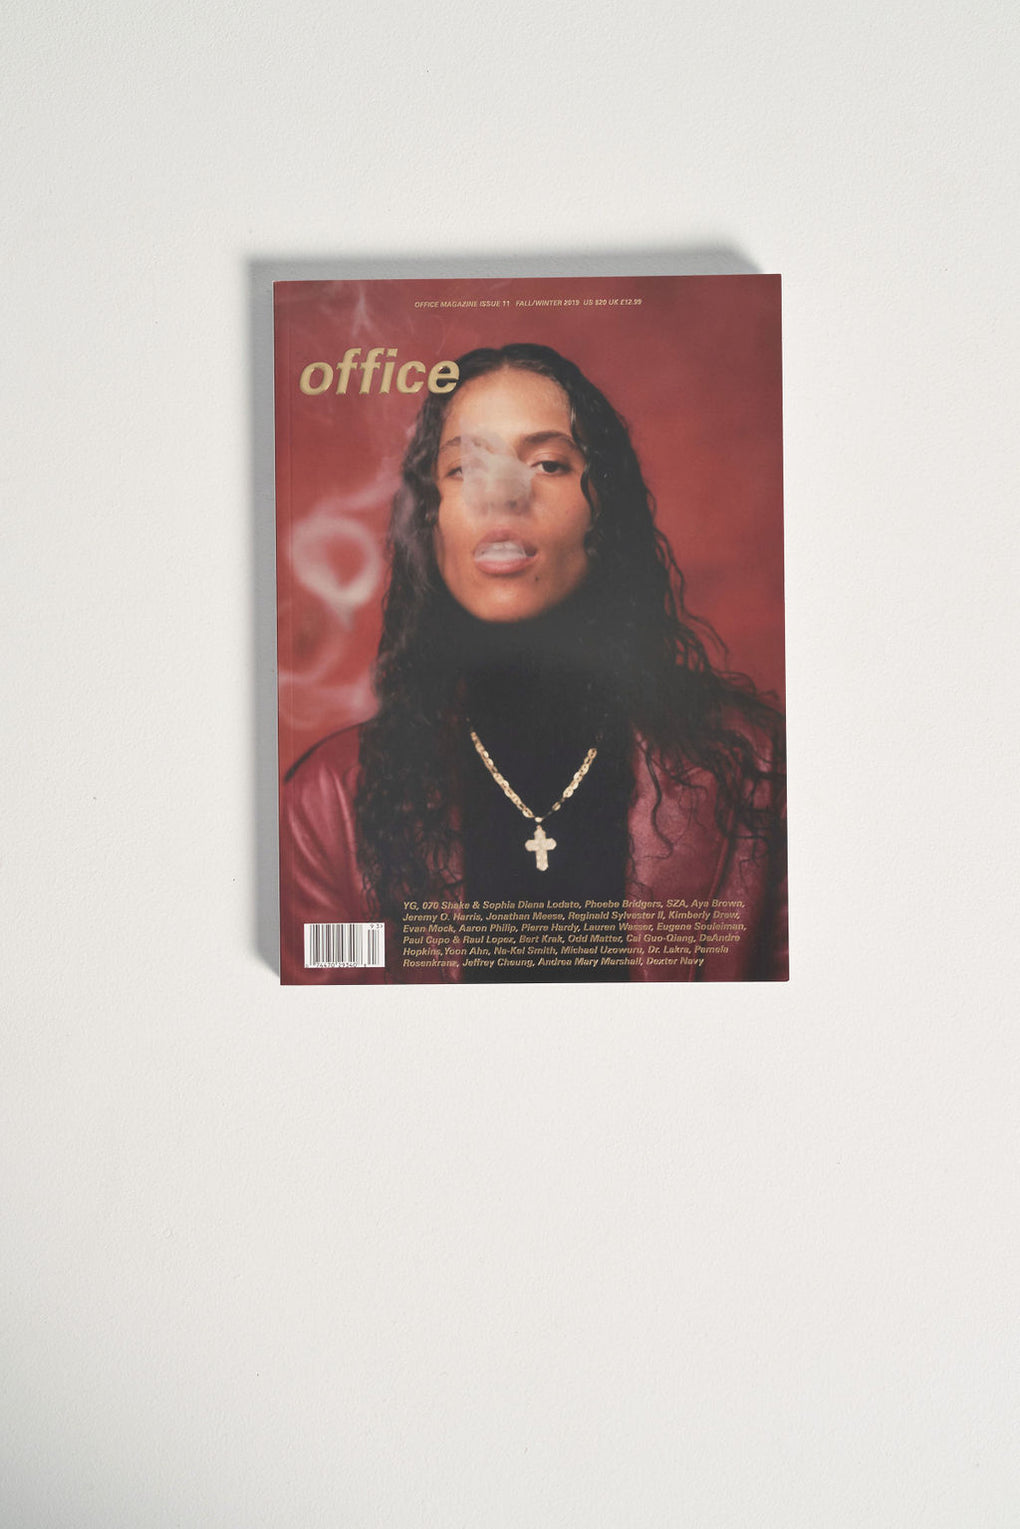 Office Magazine #11